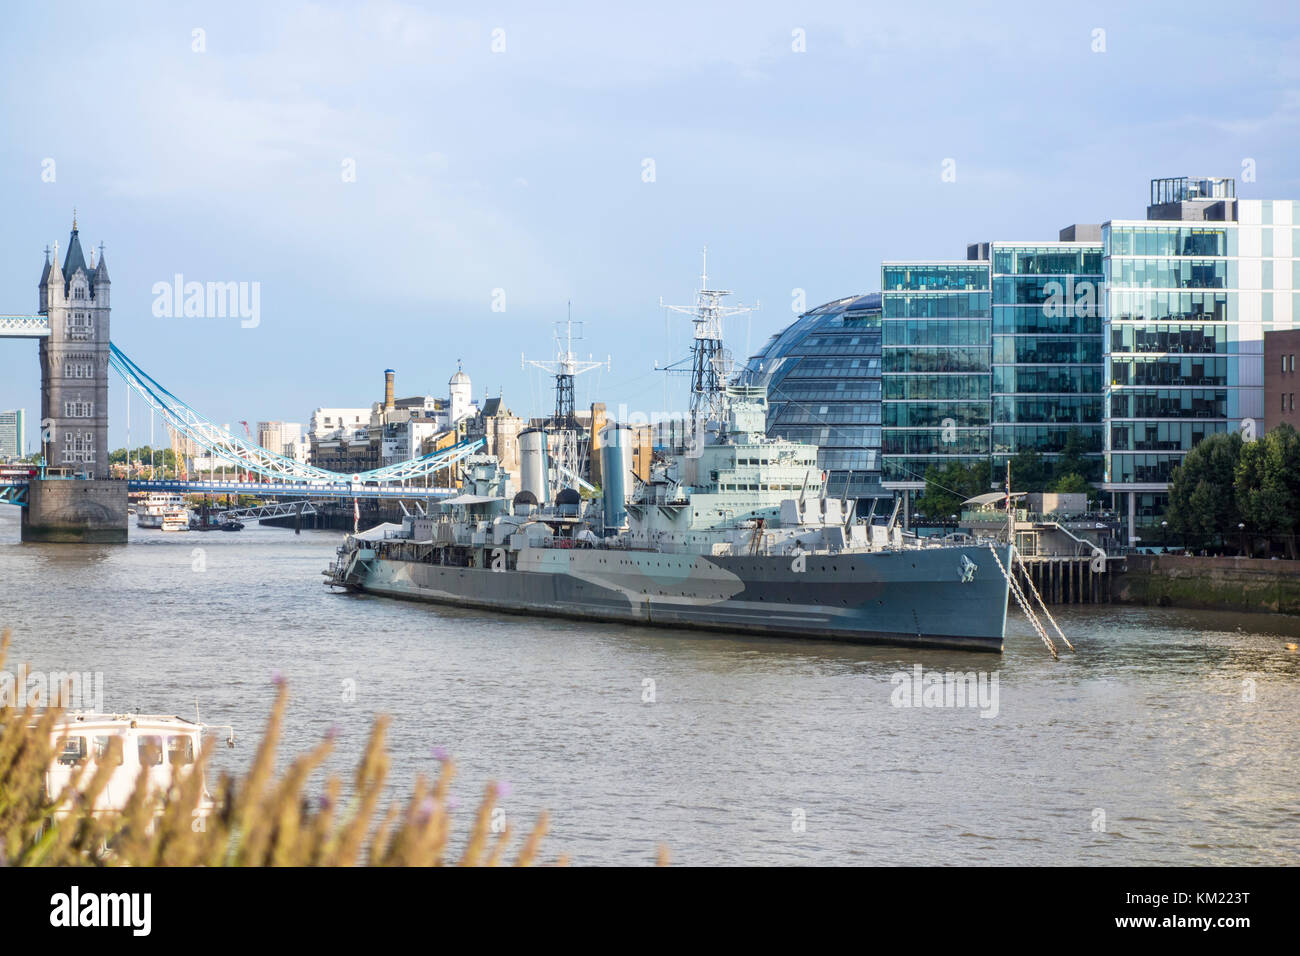 HMS Belfast WWII warship now a museum moored on the River Thames, London, UK - Stock Image